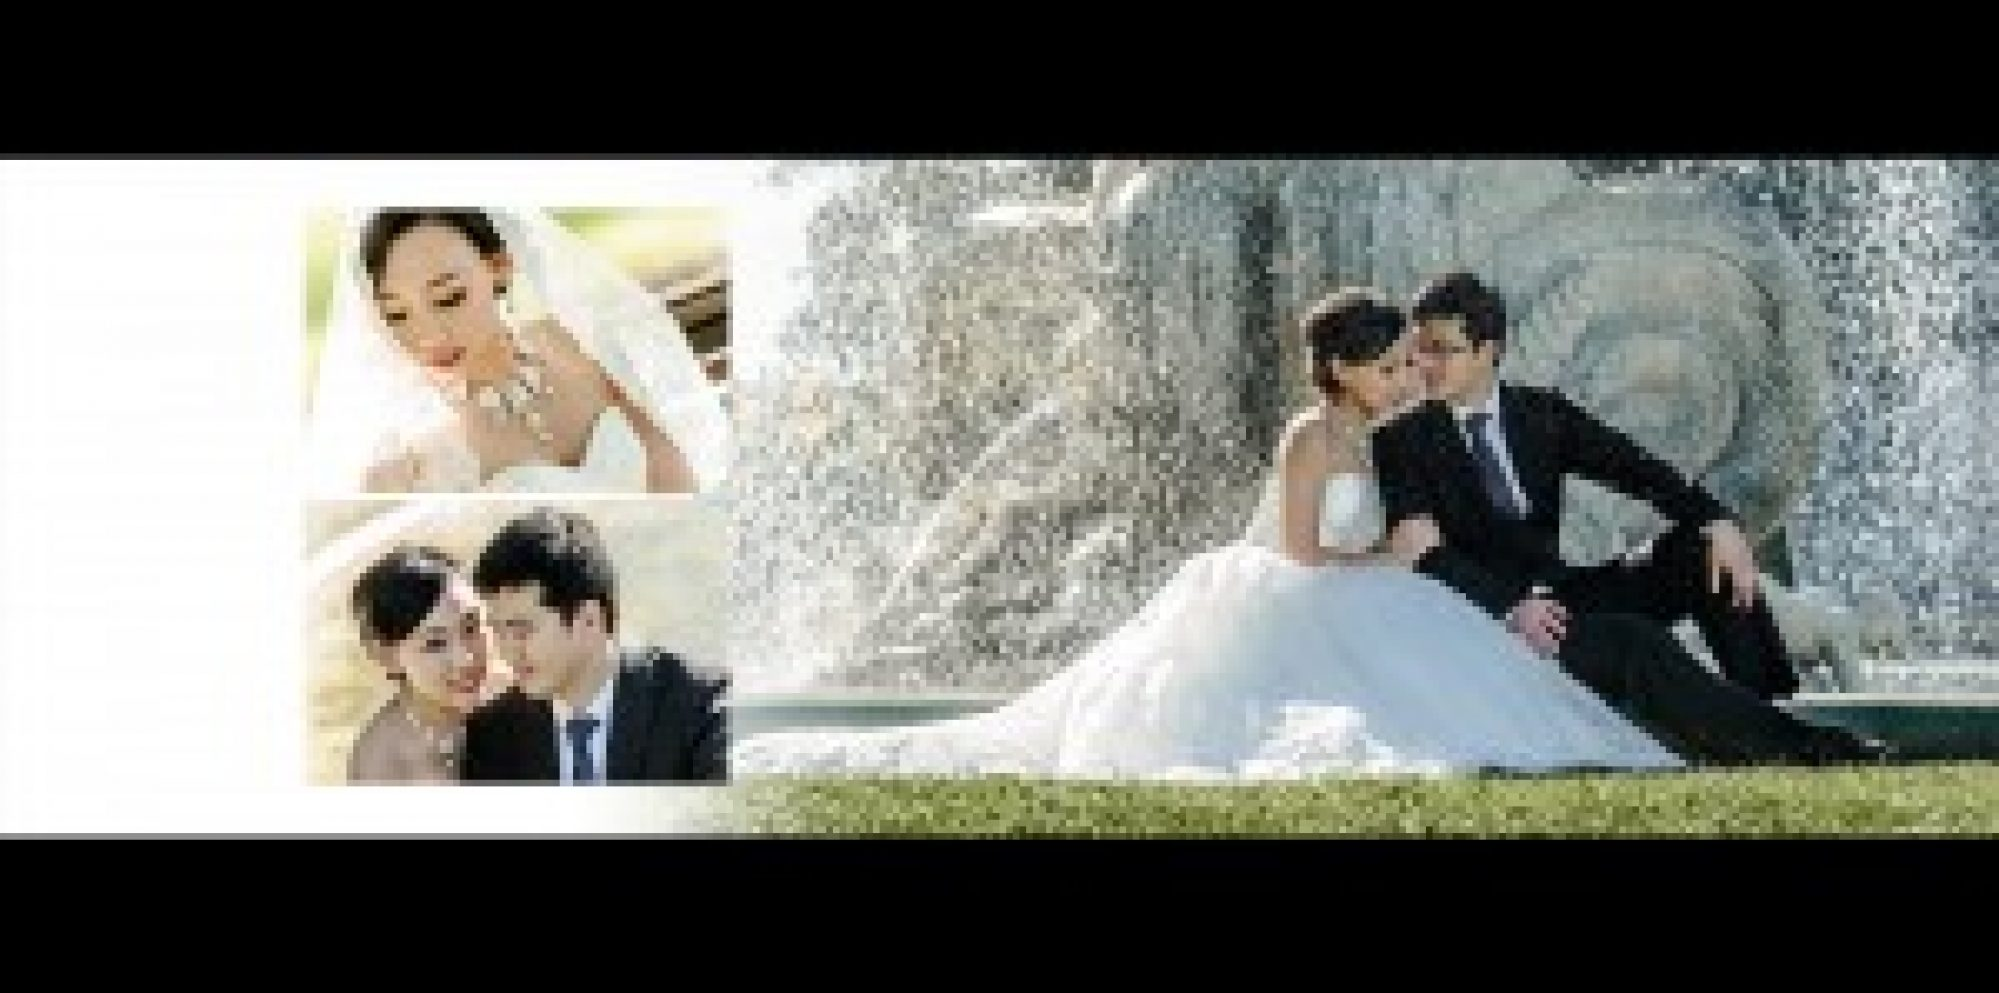 Ask a potential videographer how he will climax your wedding video